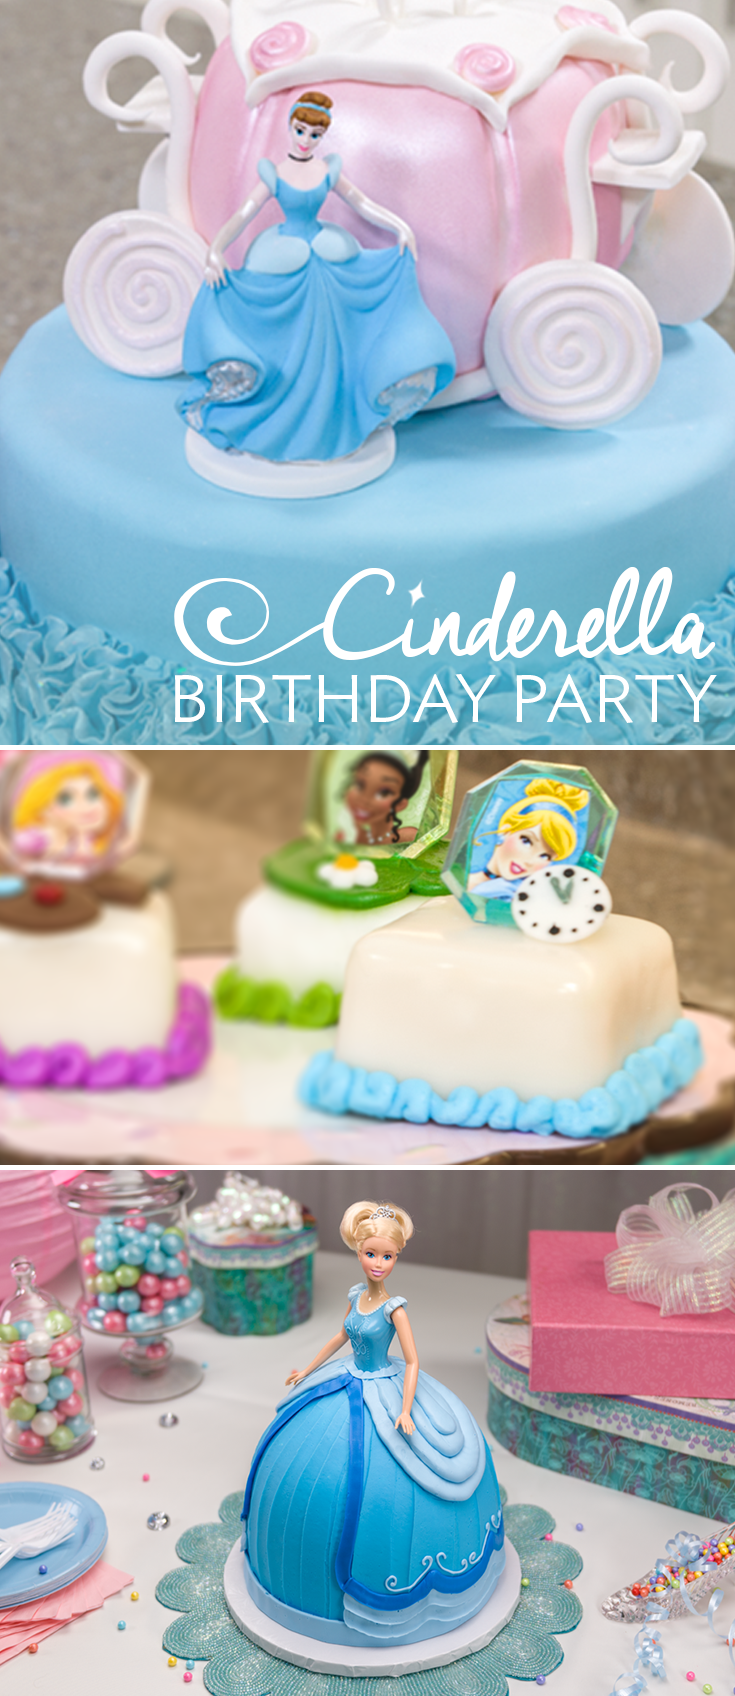 Pick out cake toppers and cupcake rings for a magical Cinderella